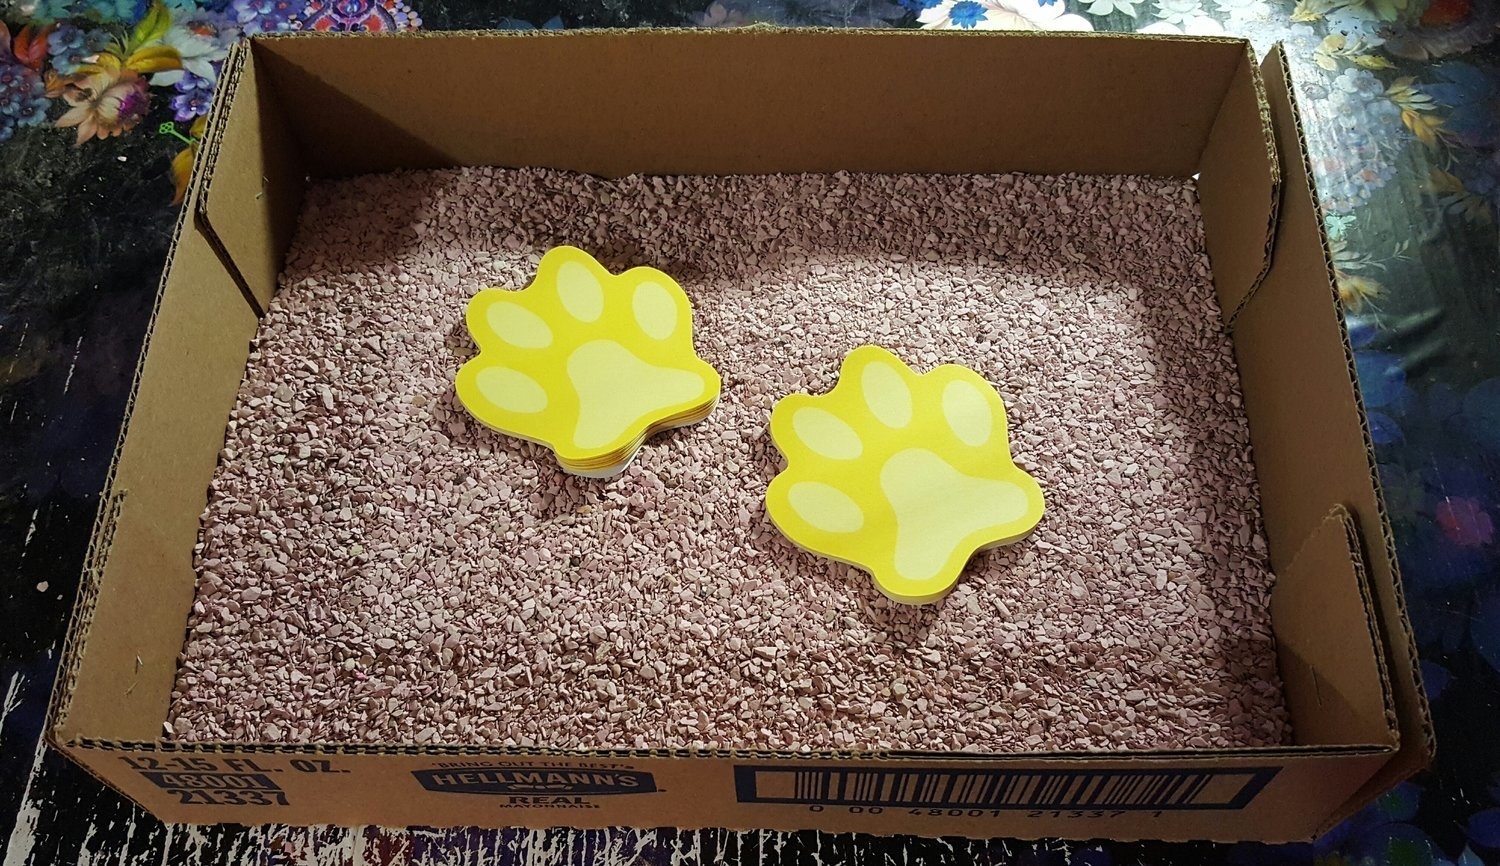 **CLOSEOUT - SUPER SALE** 15 FUR $1.00 Disposable Cardboard Litter Boxes **Shipped flat and corners will need to be glued or stapled** (B)